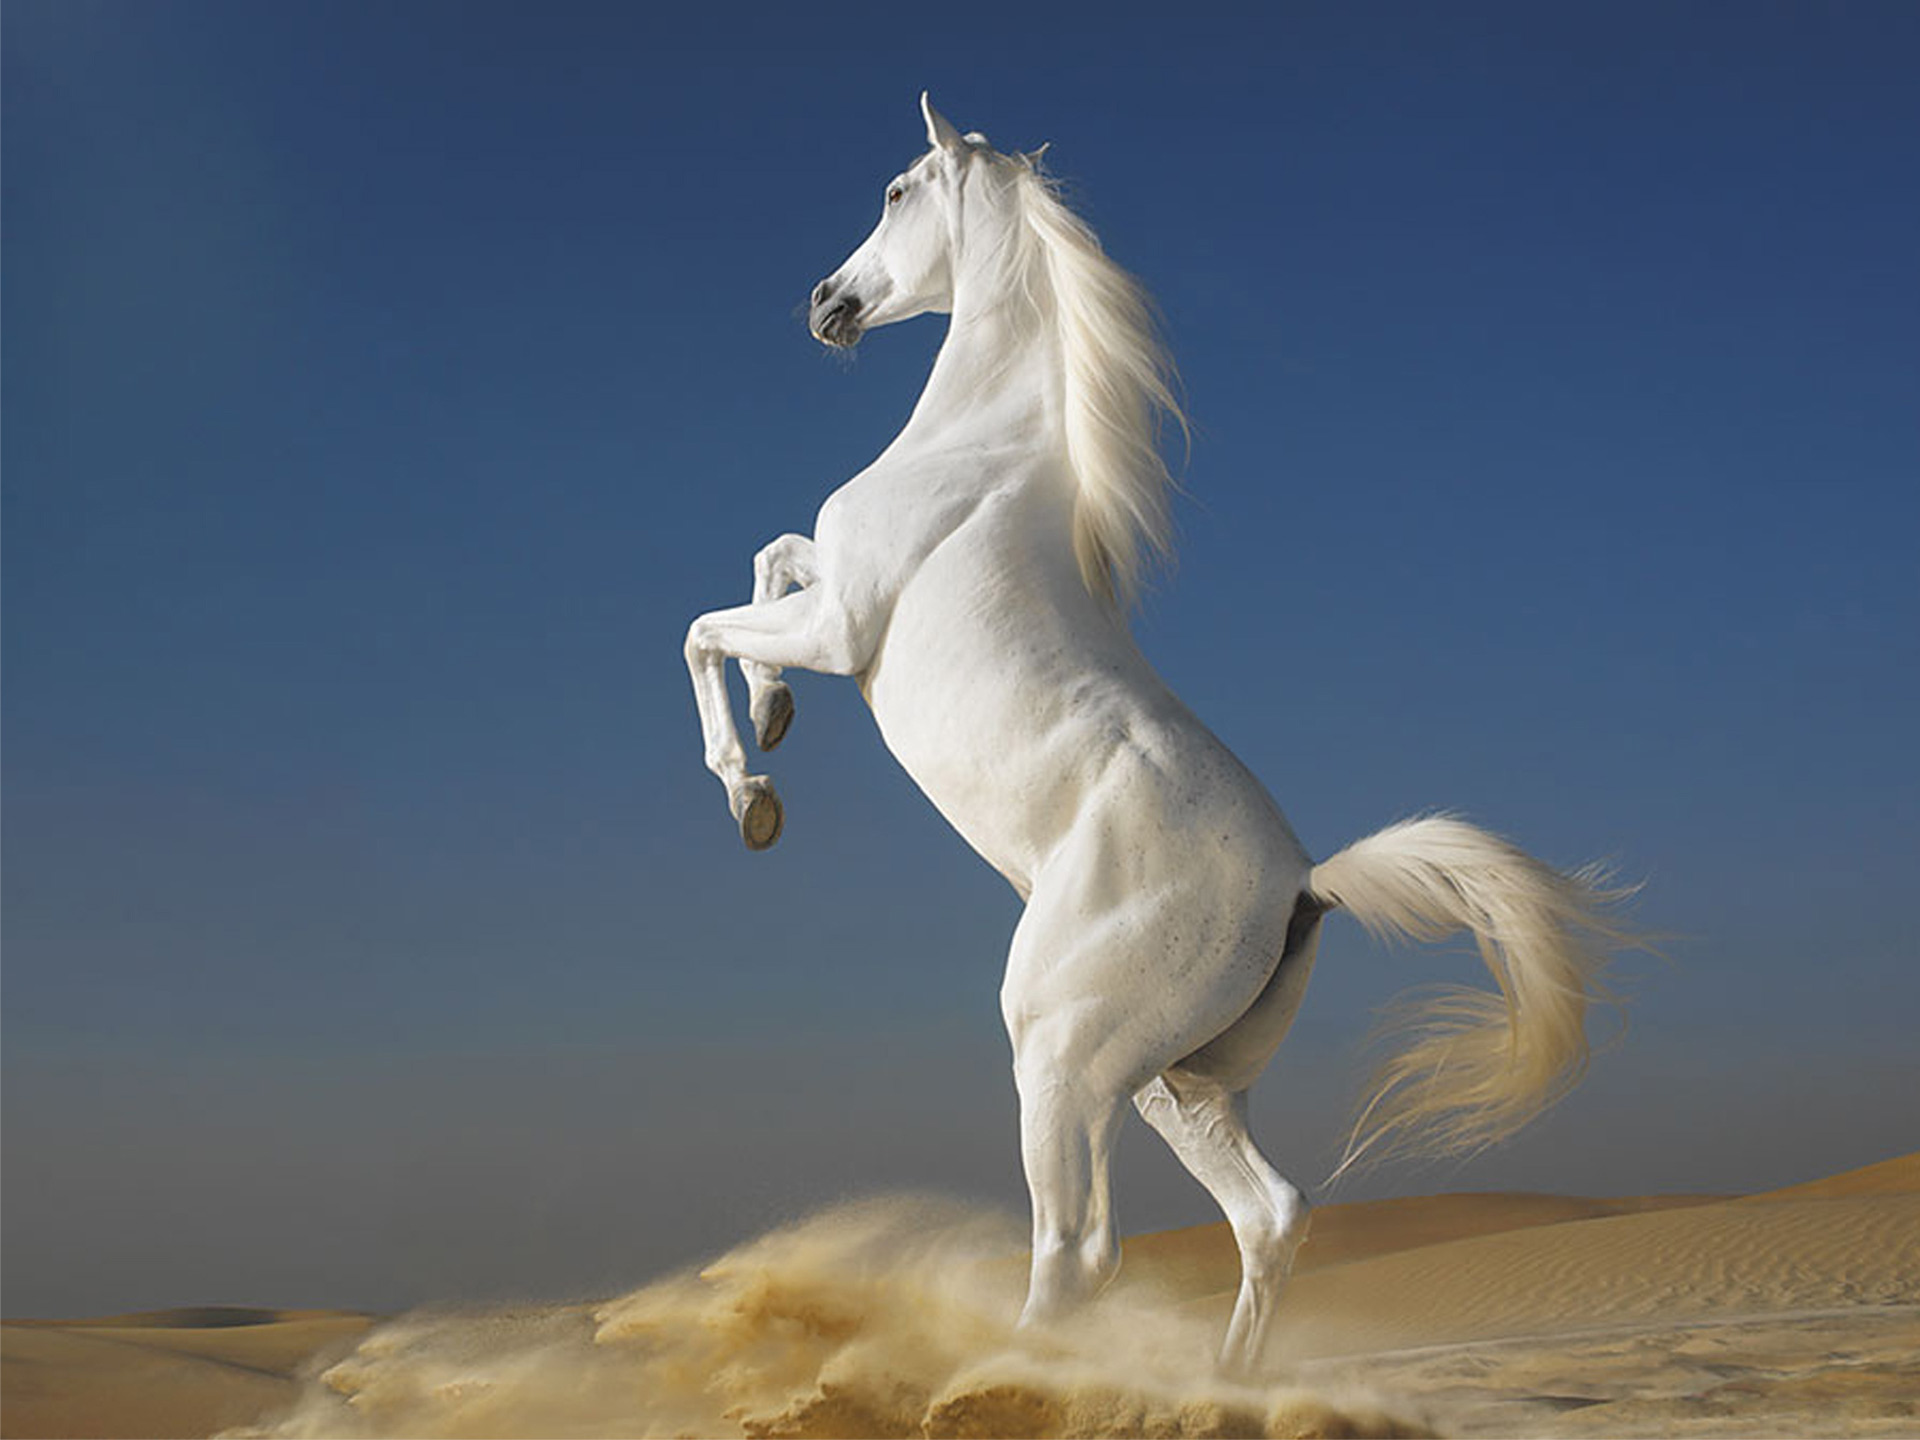 horses images white horse ♡ hd wallpaper and background photos